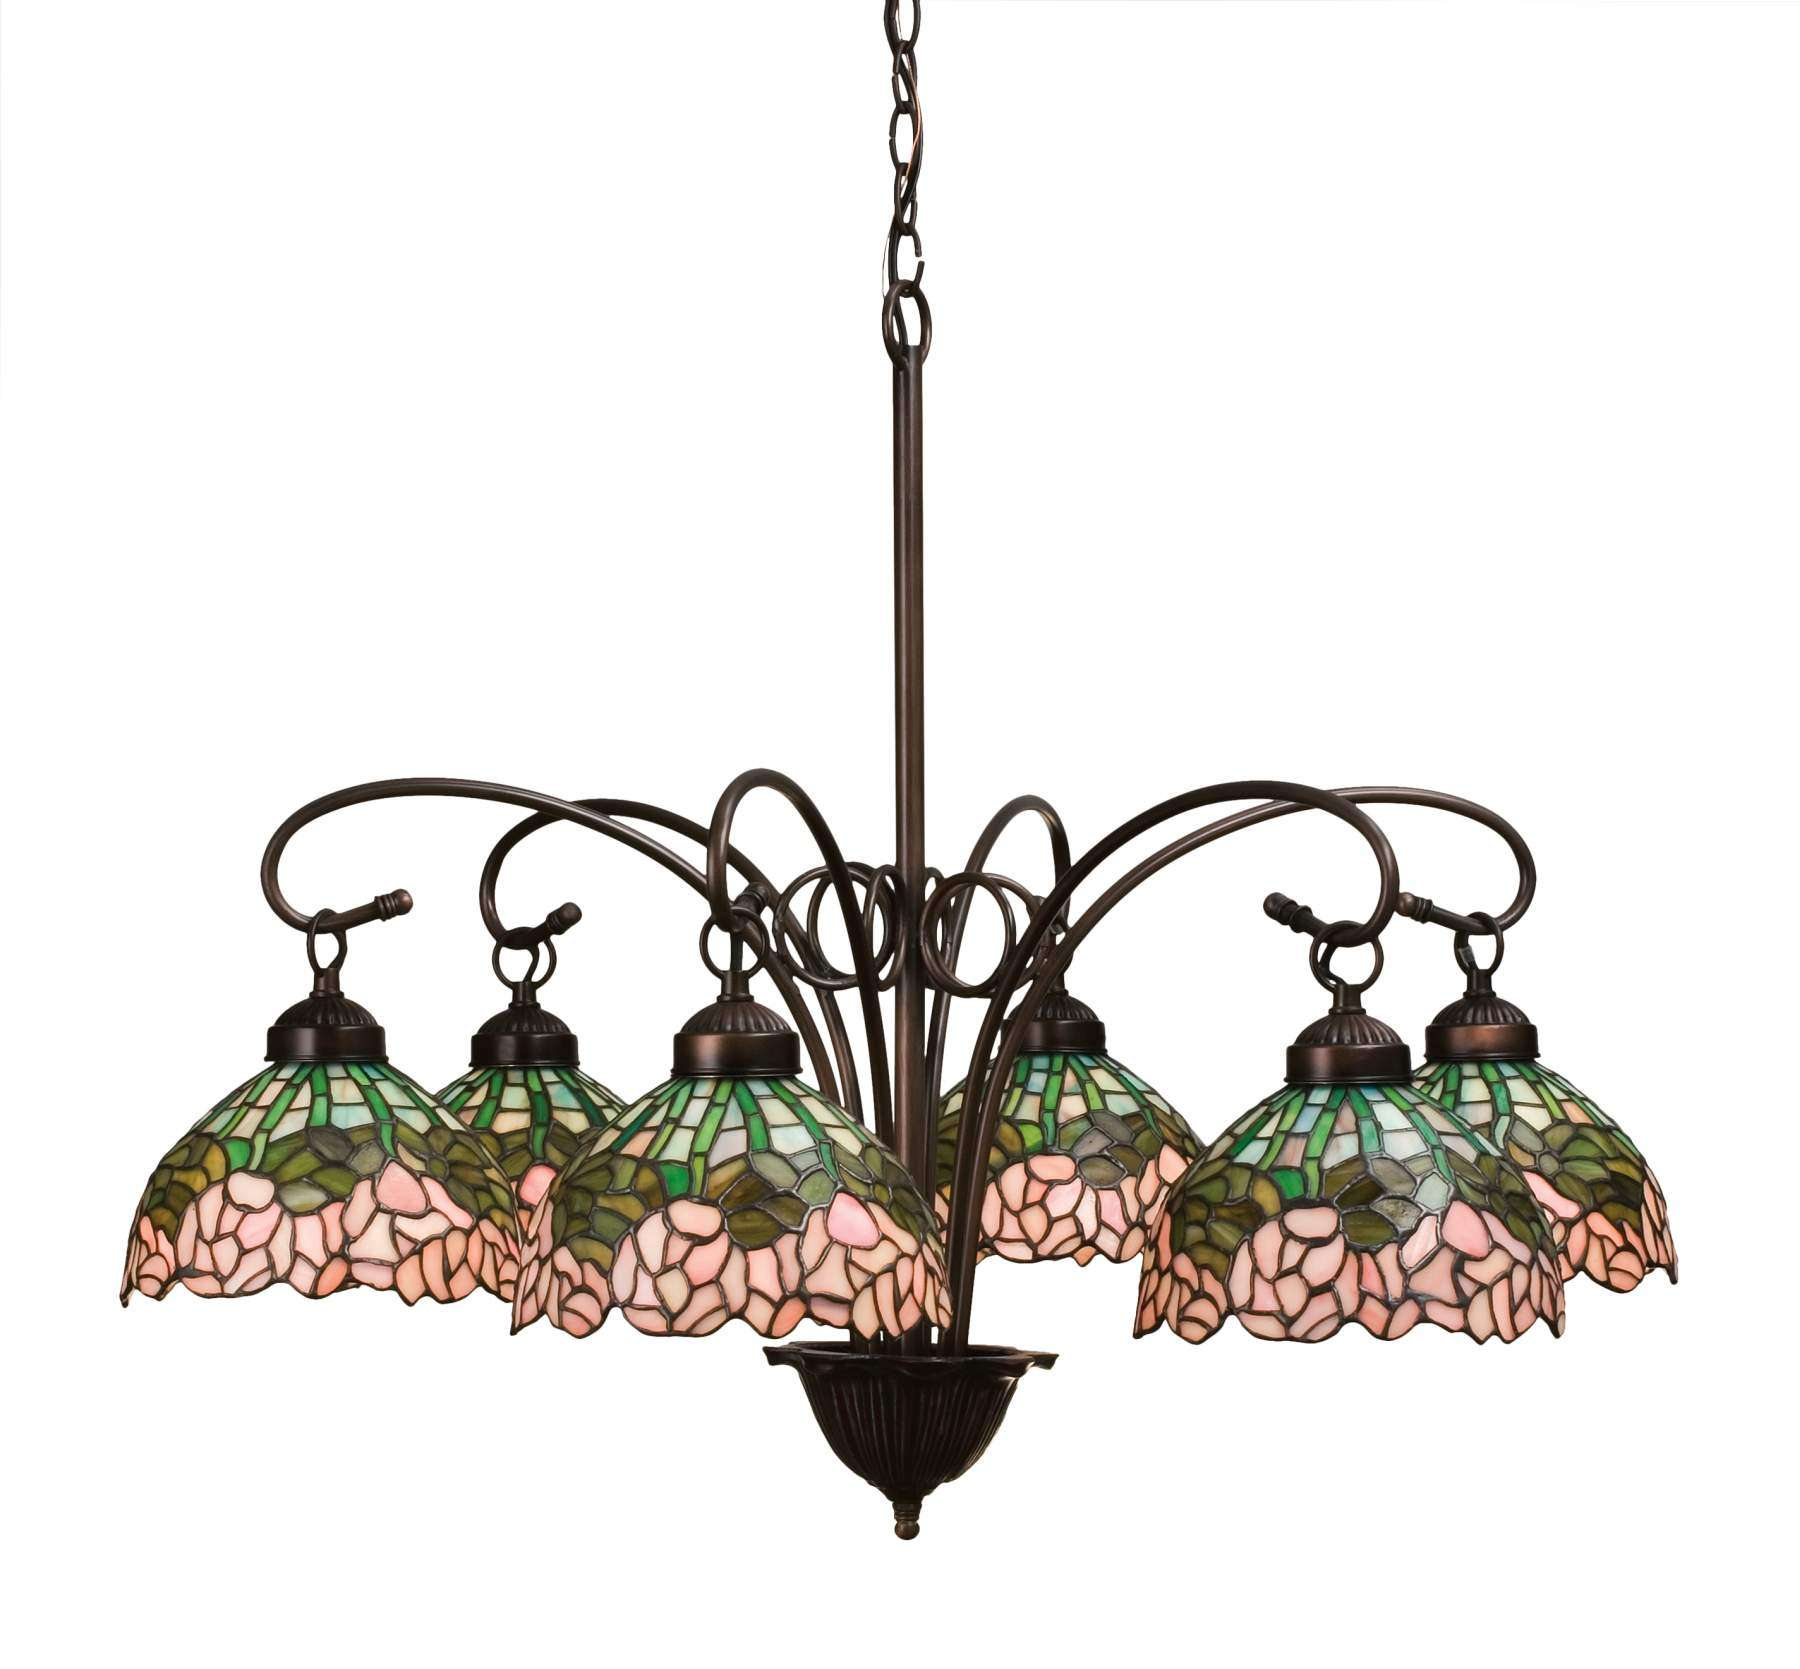 Meyda Tiffany 18713 Cabbage Rose 6 Lt Chandelier in Mahogany Bronze finish